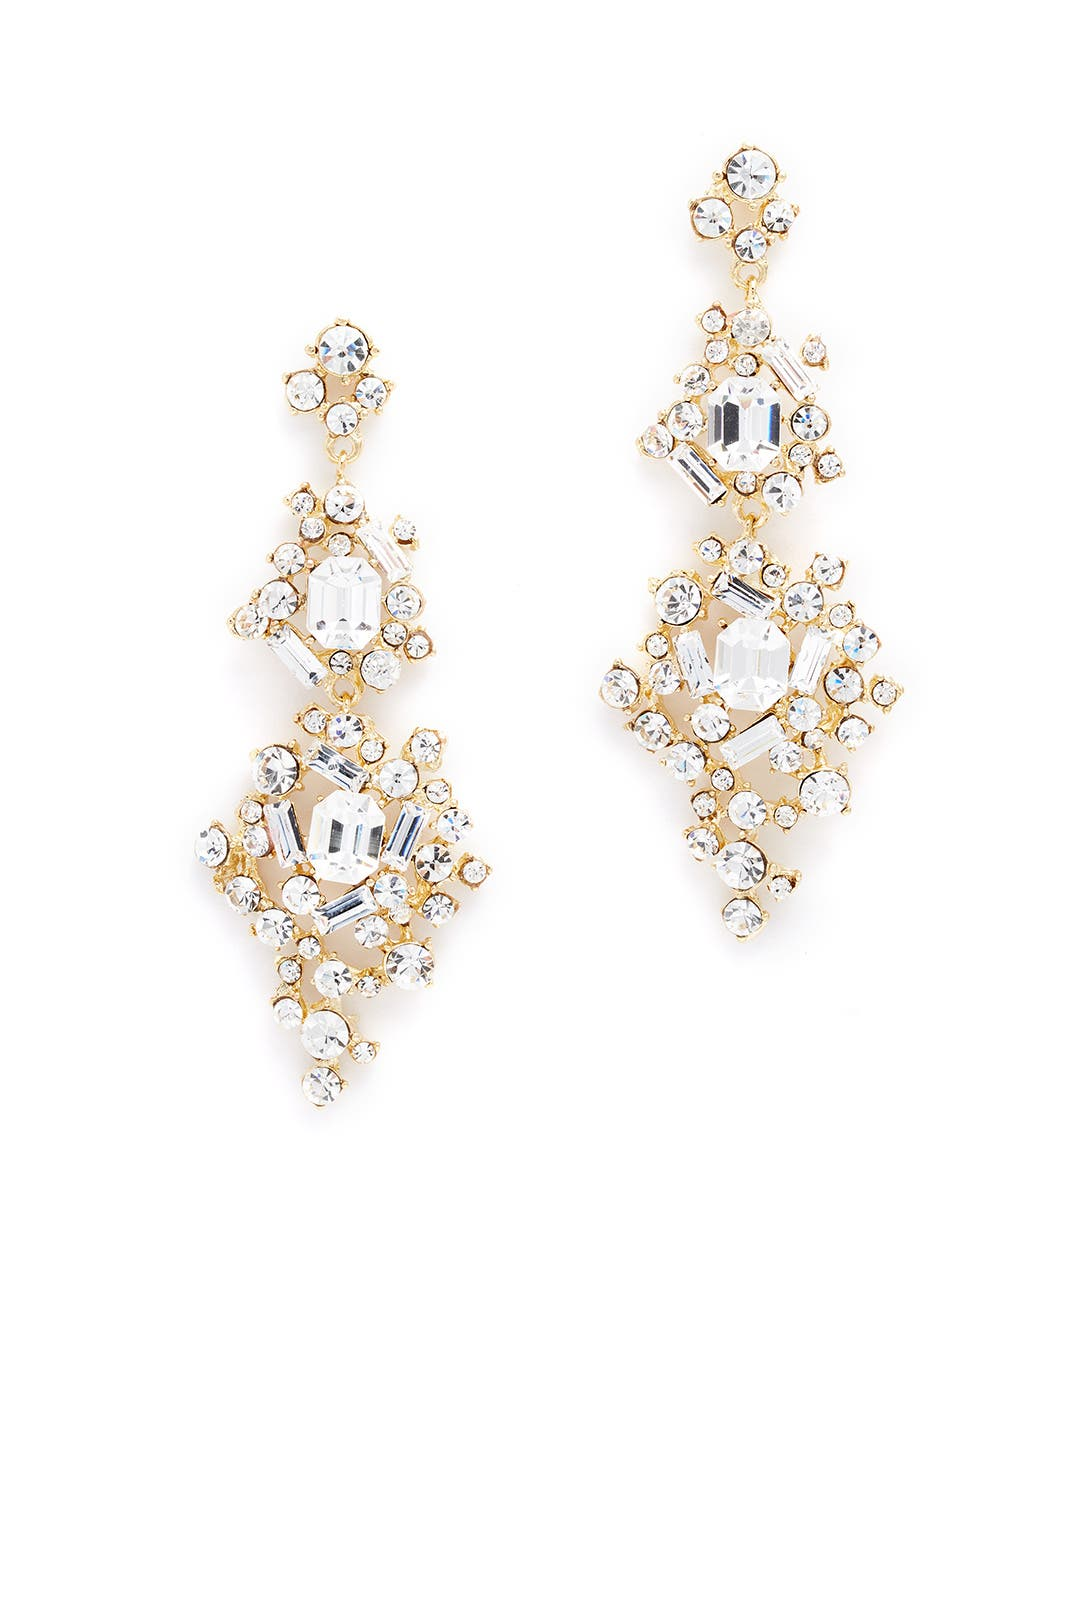 Erica Crystal Statement Earrings By Rj Graziano For $20  Rent The Runway